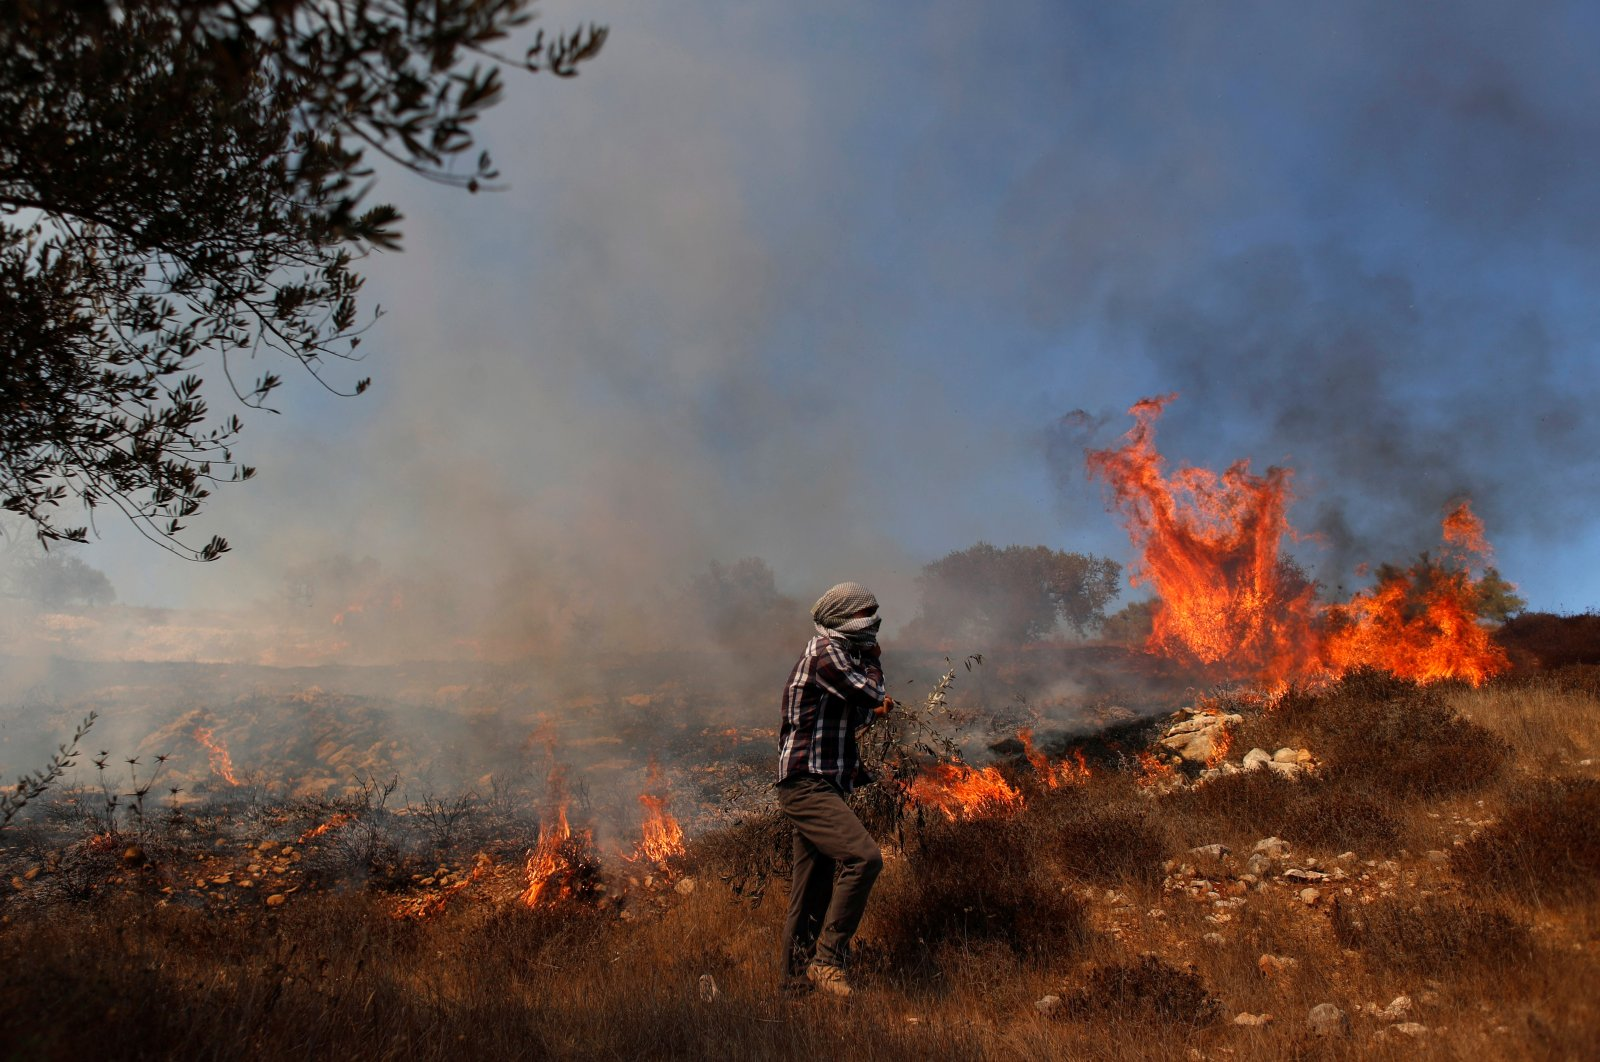 Grass burns in an olive field after Israeli forces fired tear gas canisters during a Palestinian protest against Jewish settlements, near Ramallah in the Israeli-occupied West Bank, Palestine, Oct. 16, 2020. (Reuters Photo)